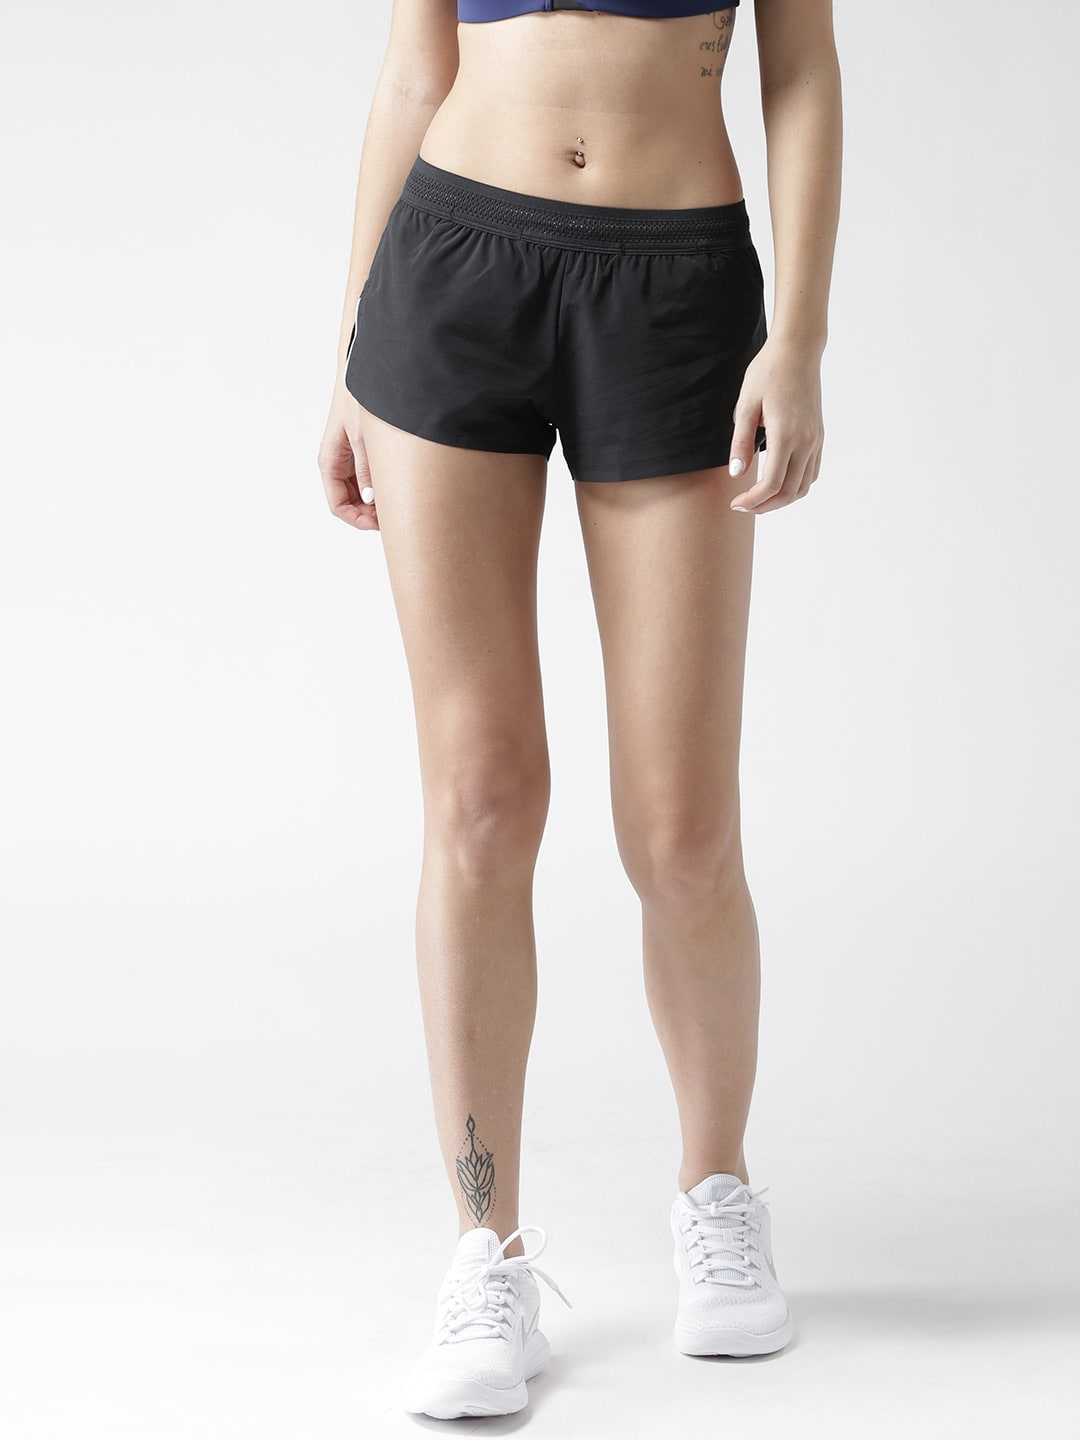 e9d530ab9825 Women s Shorts - Buy Shorts for Women Online in India